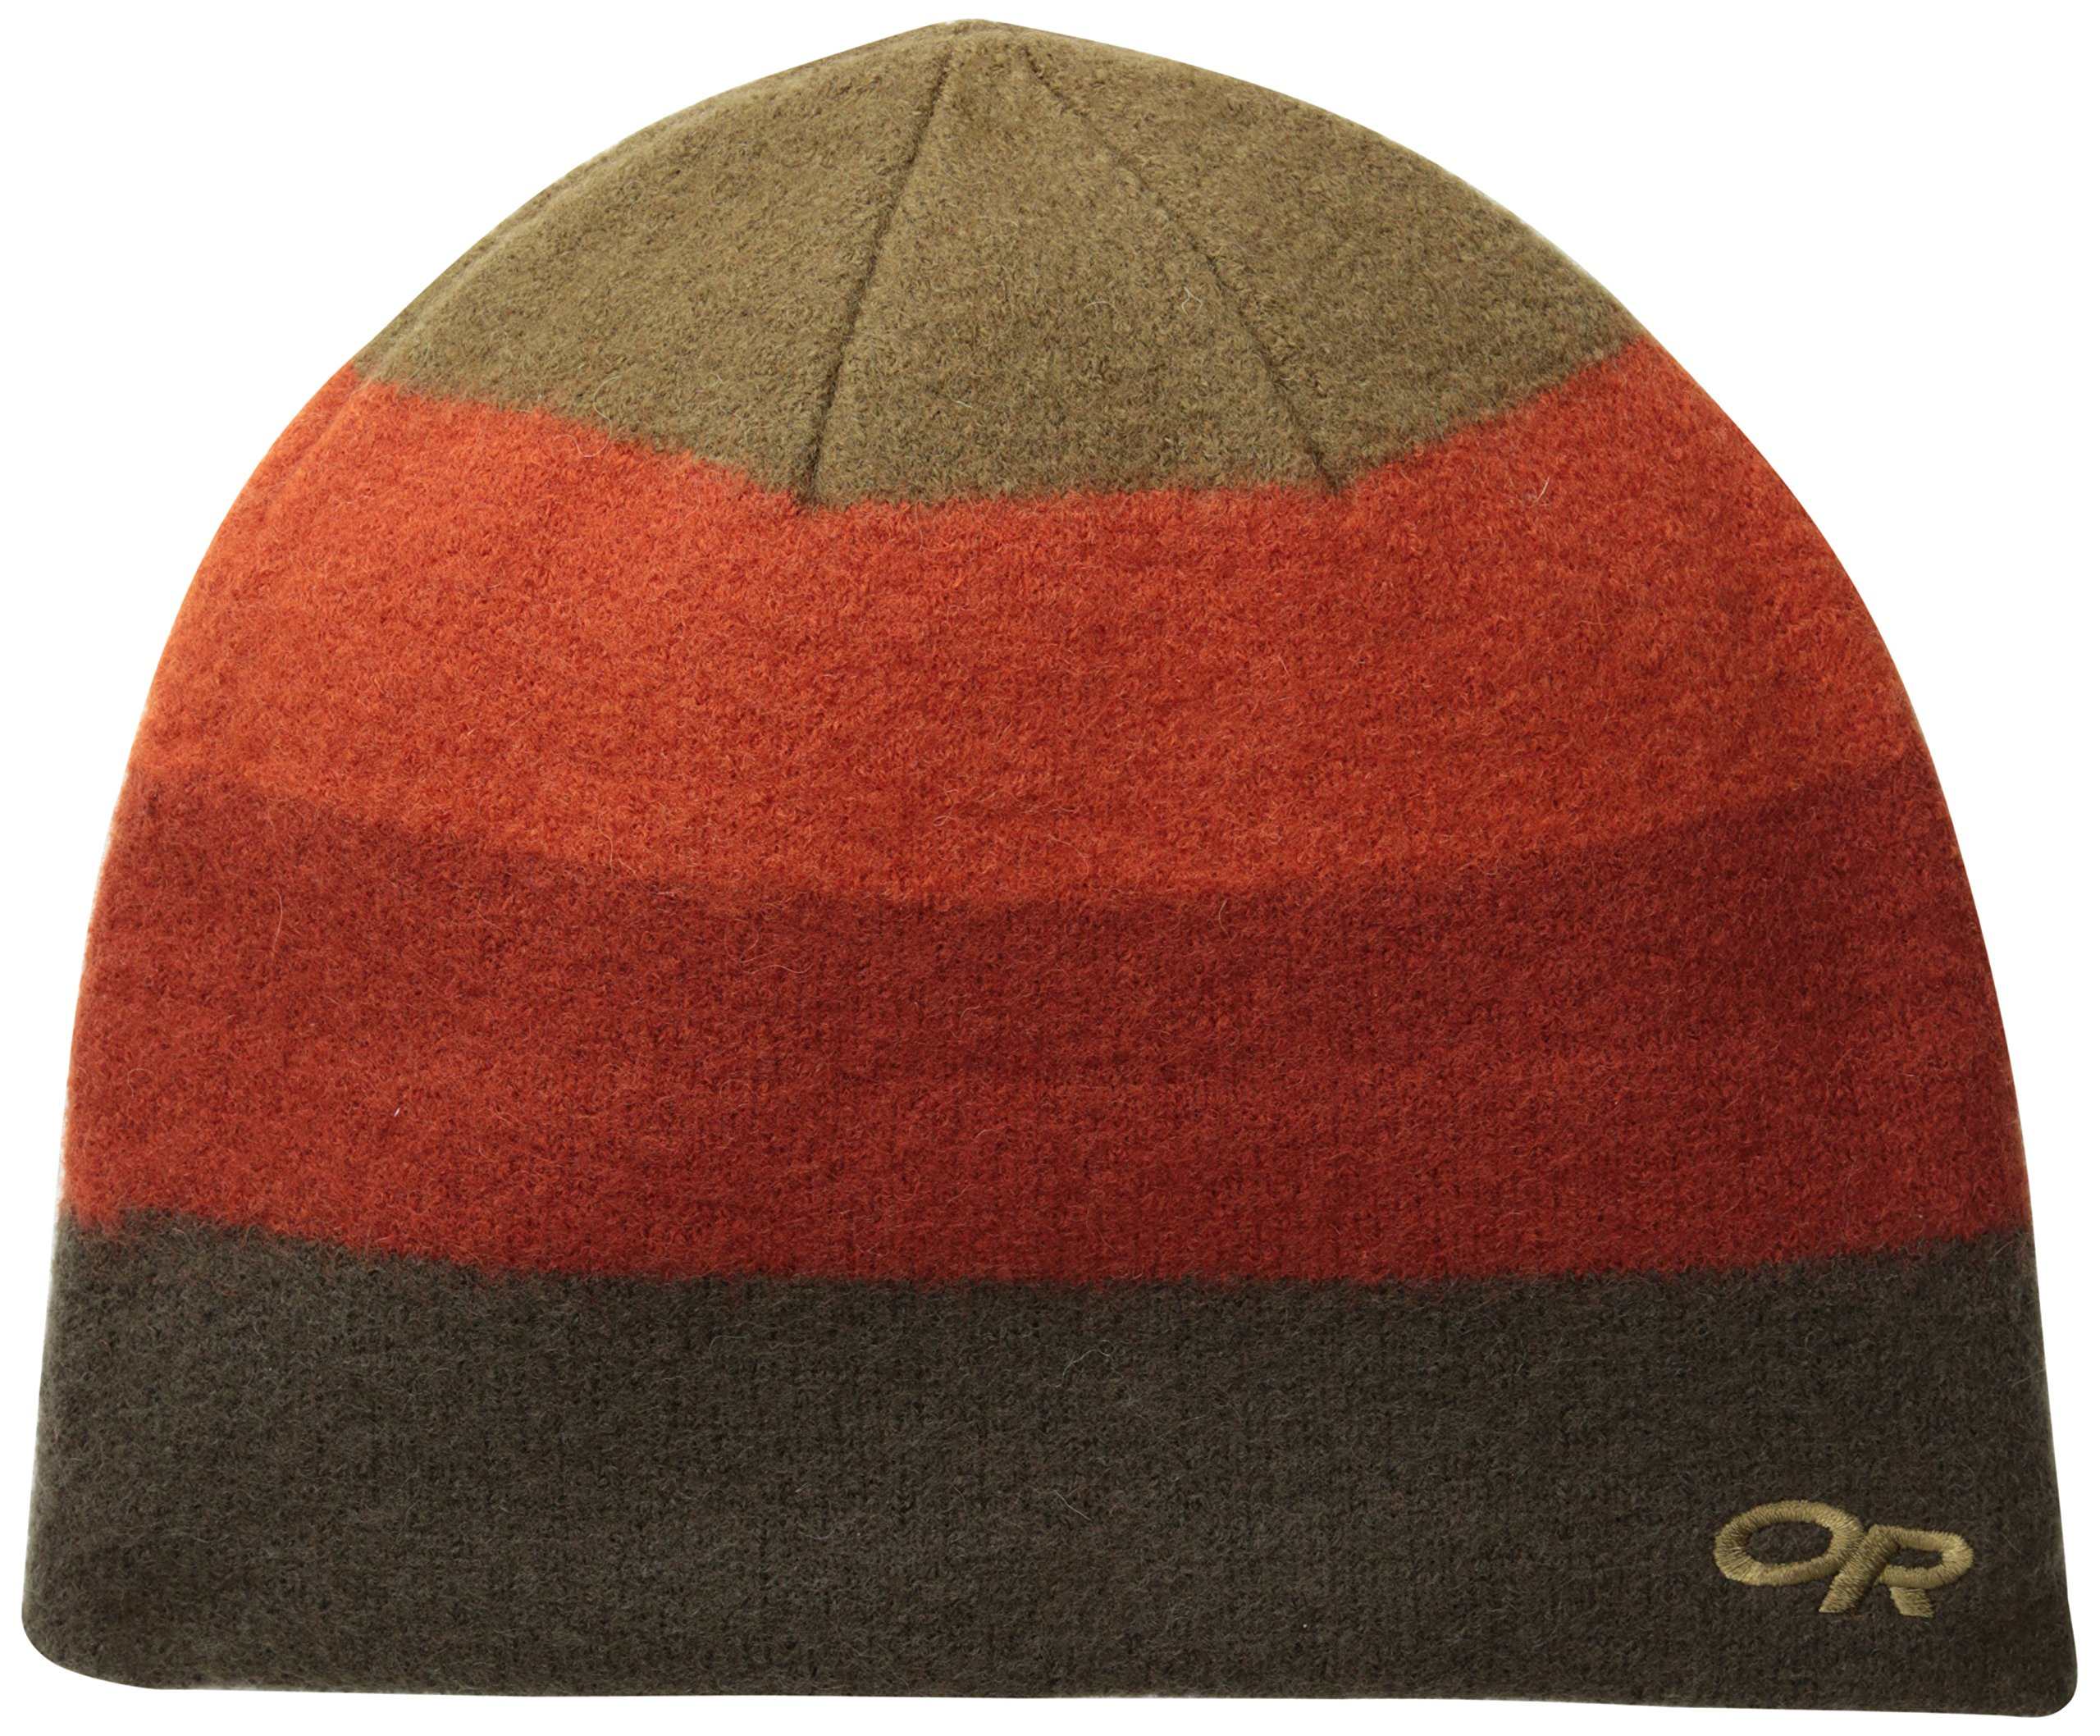 Outdoor Research Gradient Hat, Earth/Diablo, 1size